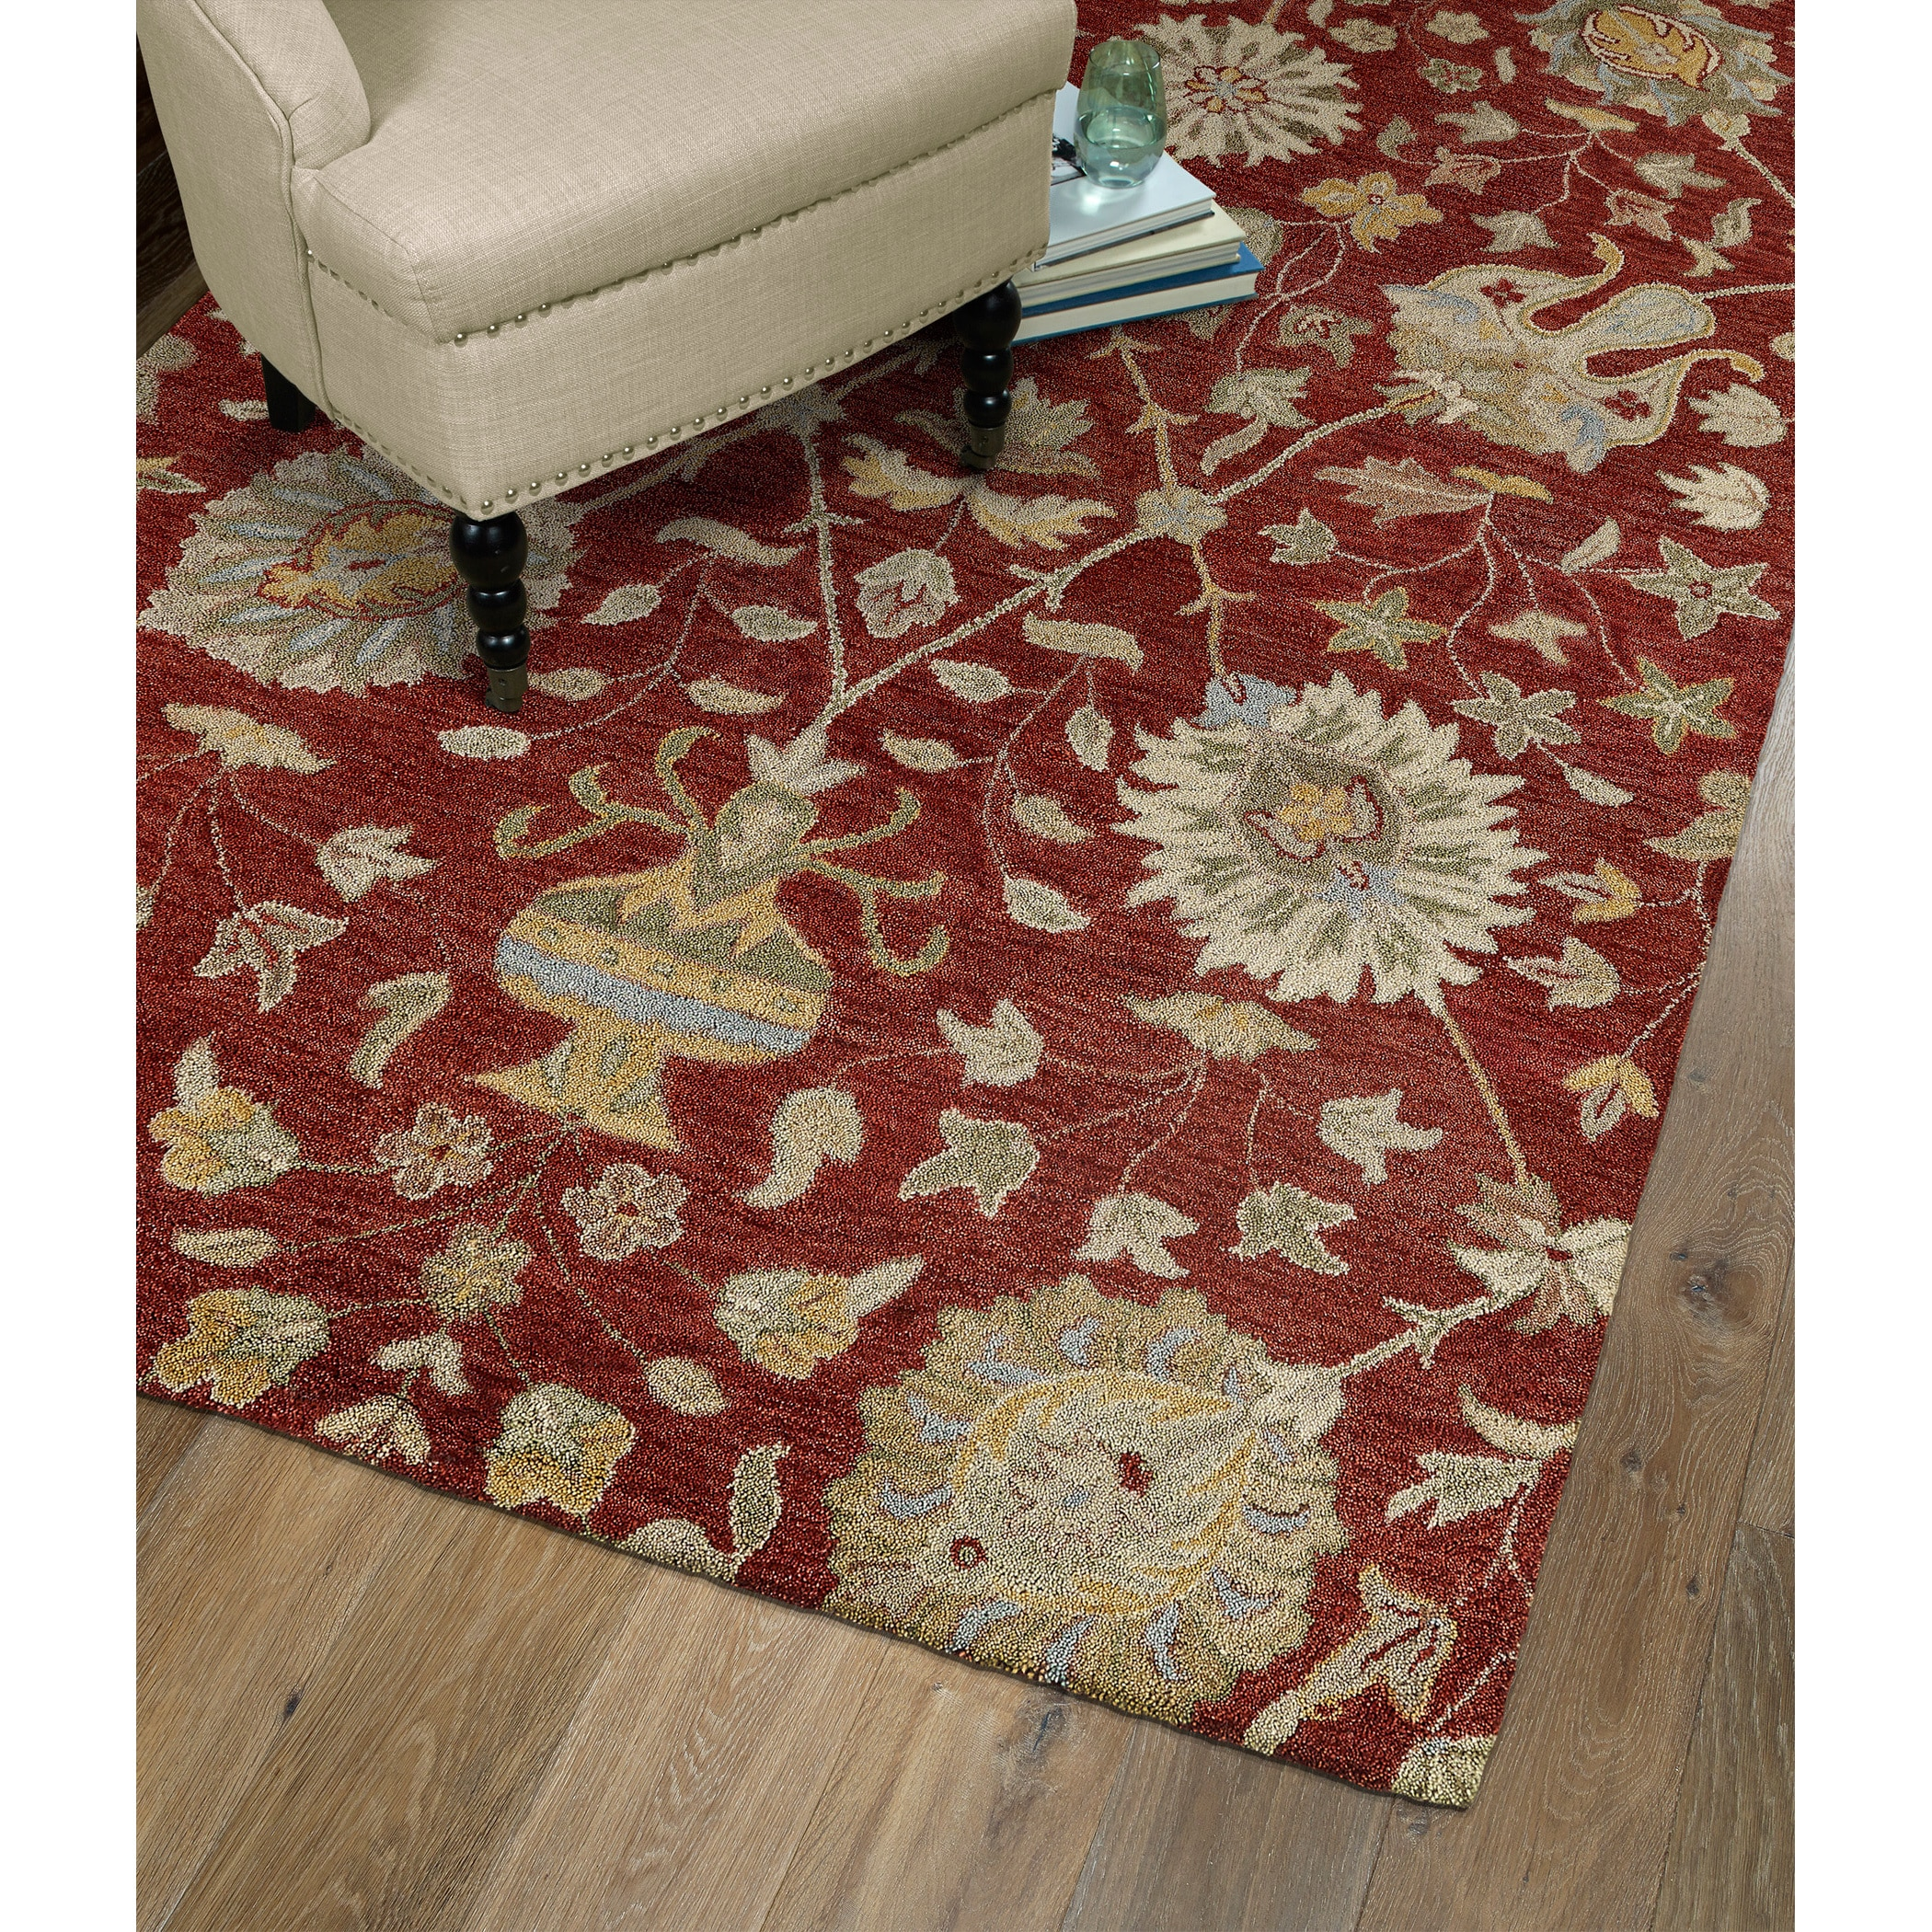 Christopher Kashan Hand-tufted Red Rug (9' x 12') at Sears.com